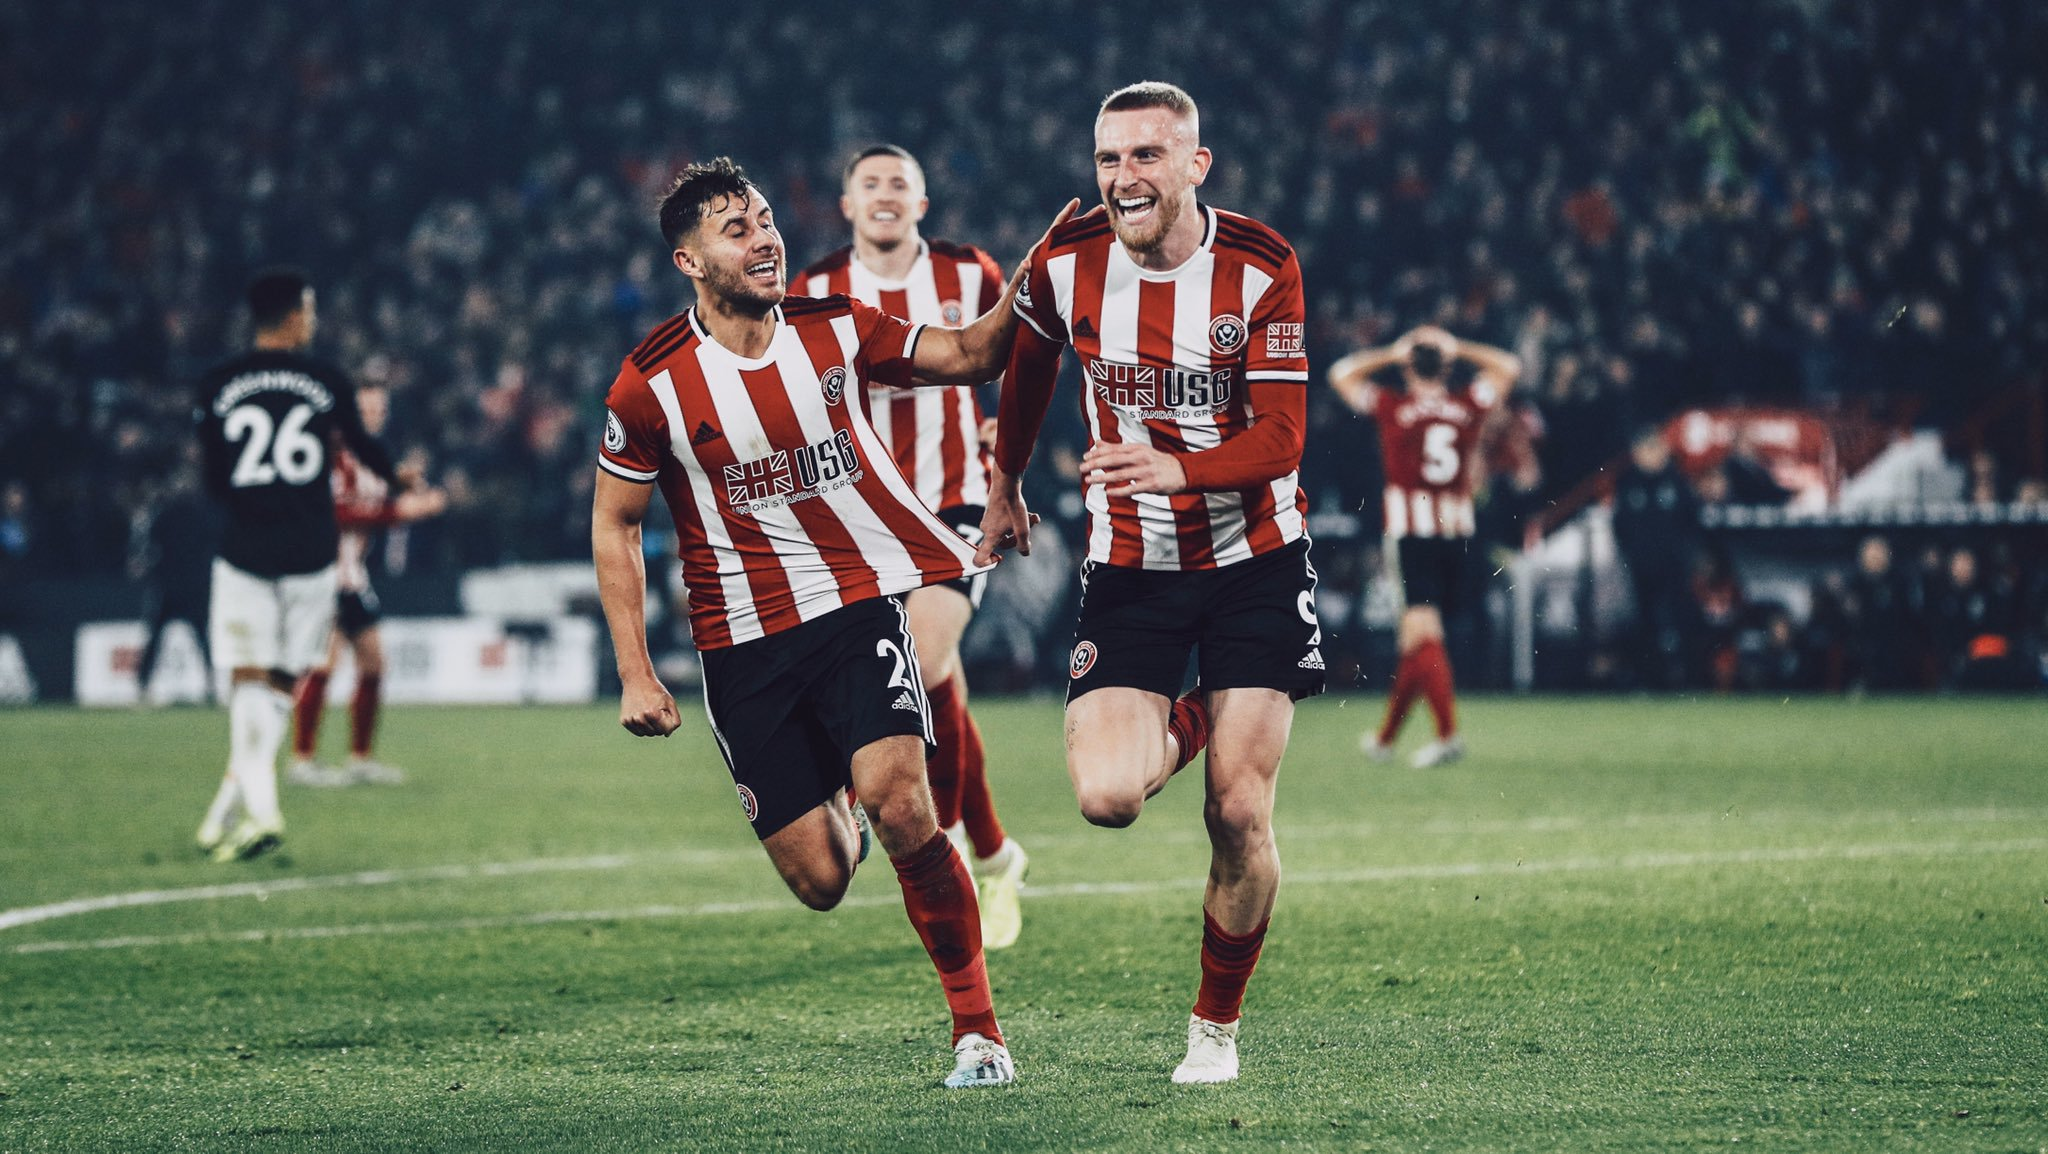 Manchester And Sheffield United In Thrilling Draw